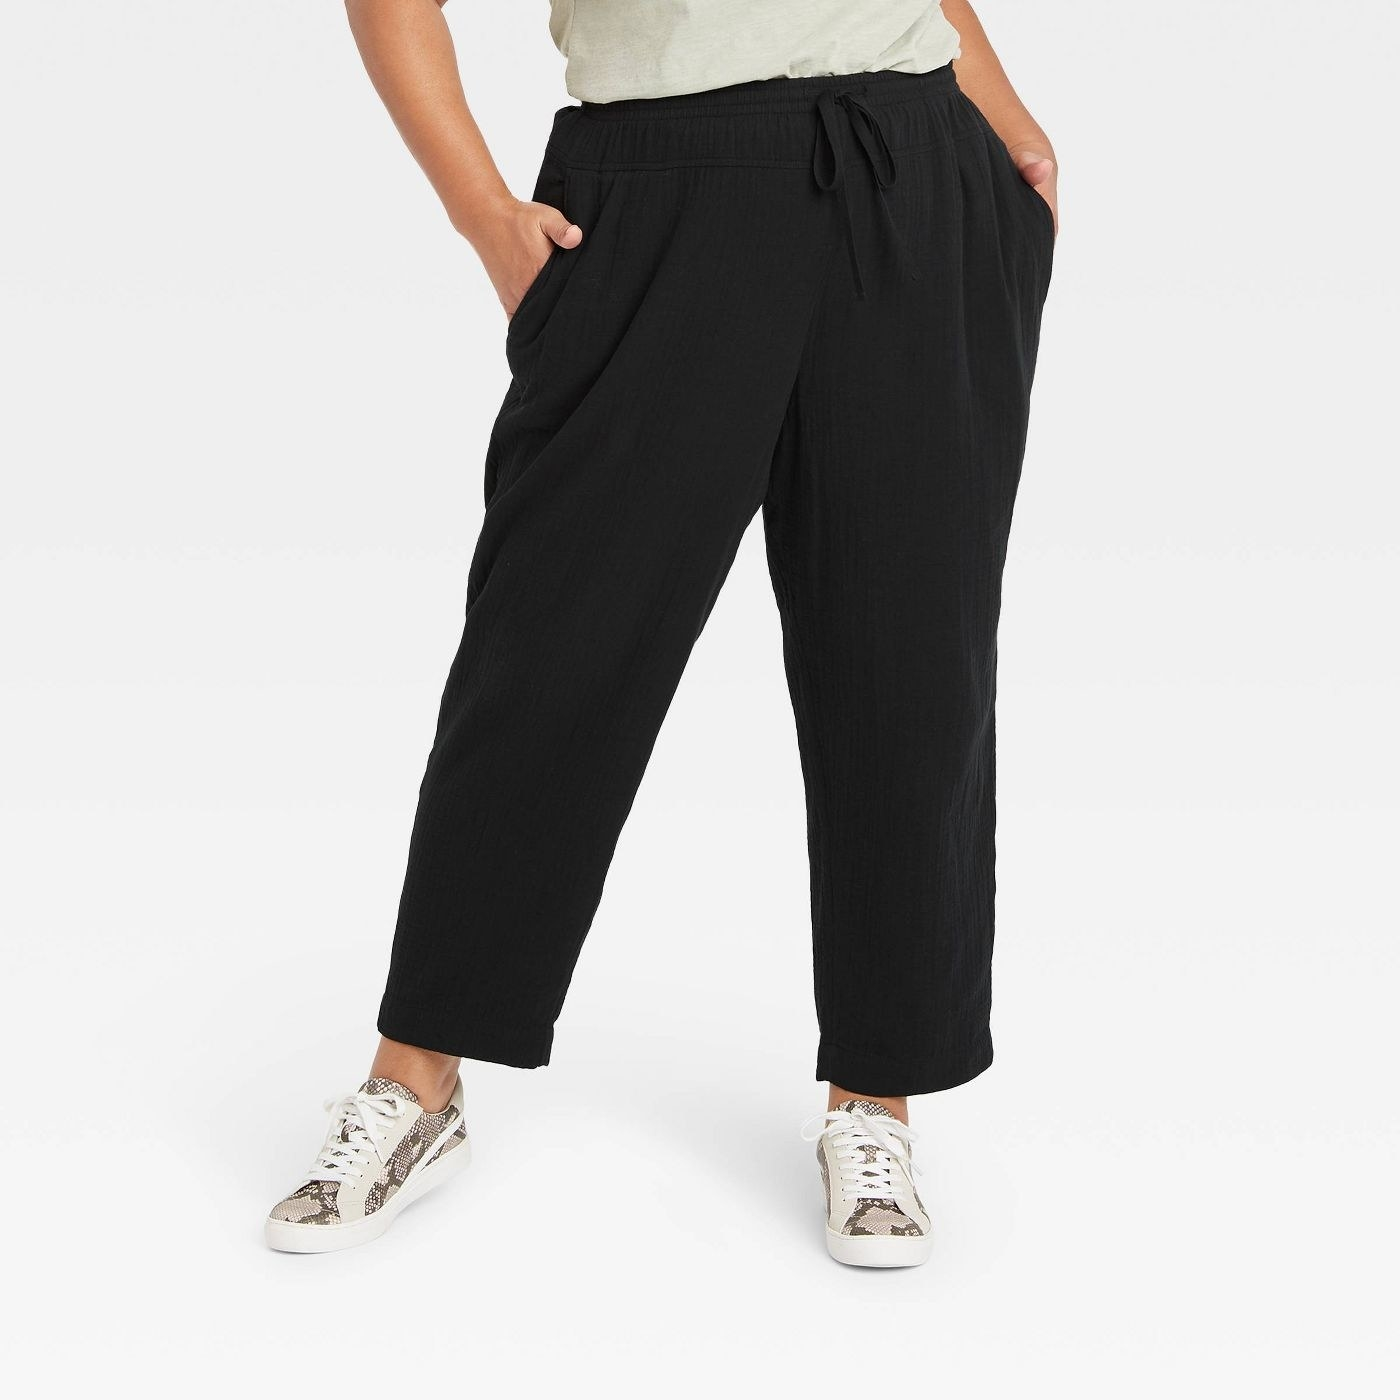 Model wearing black pants with elastic band, stops at the ankles